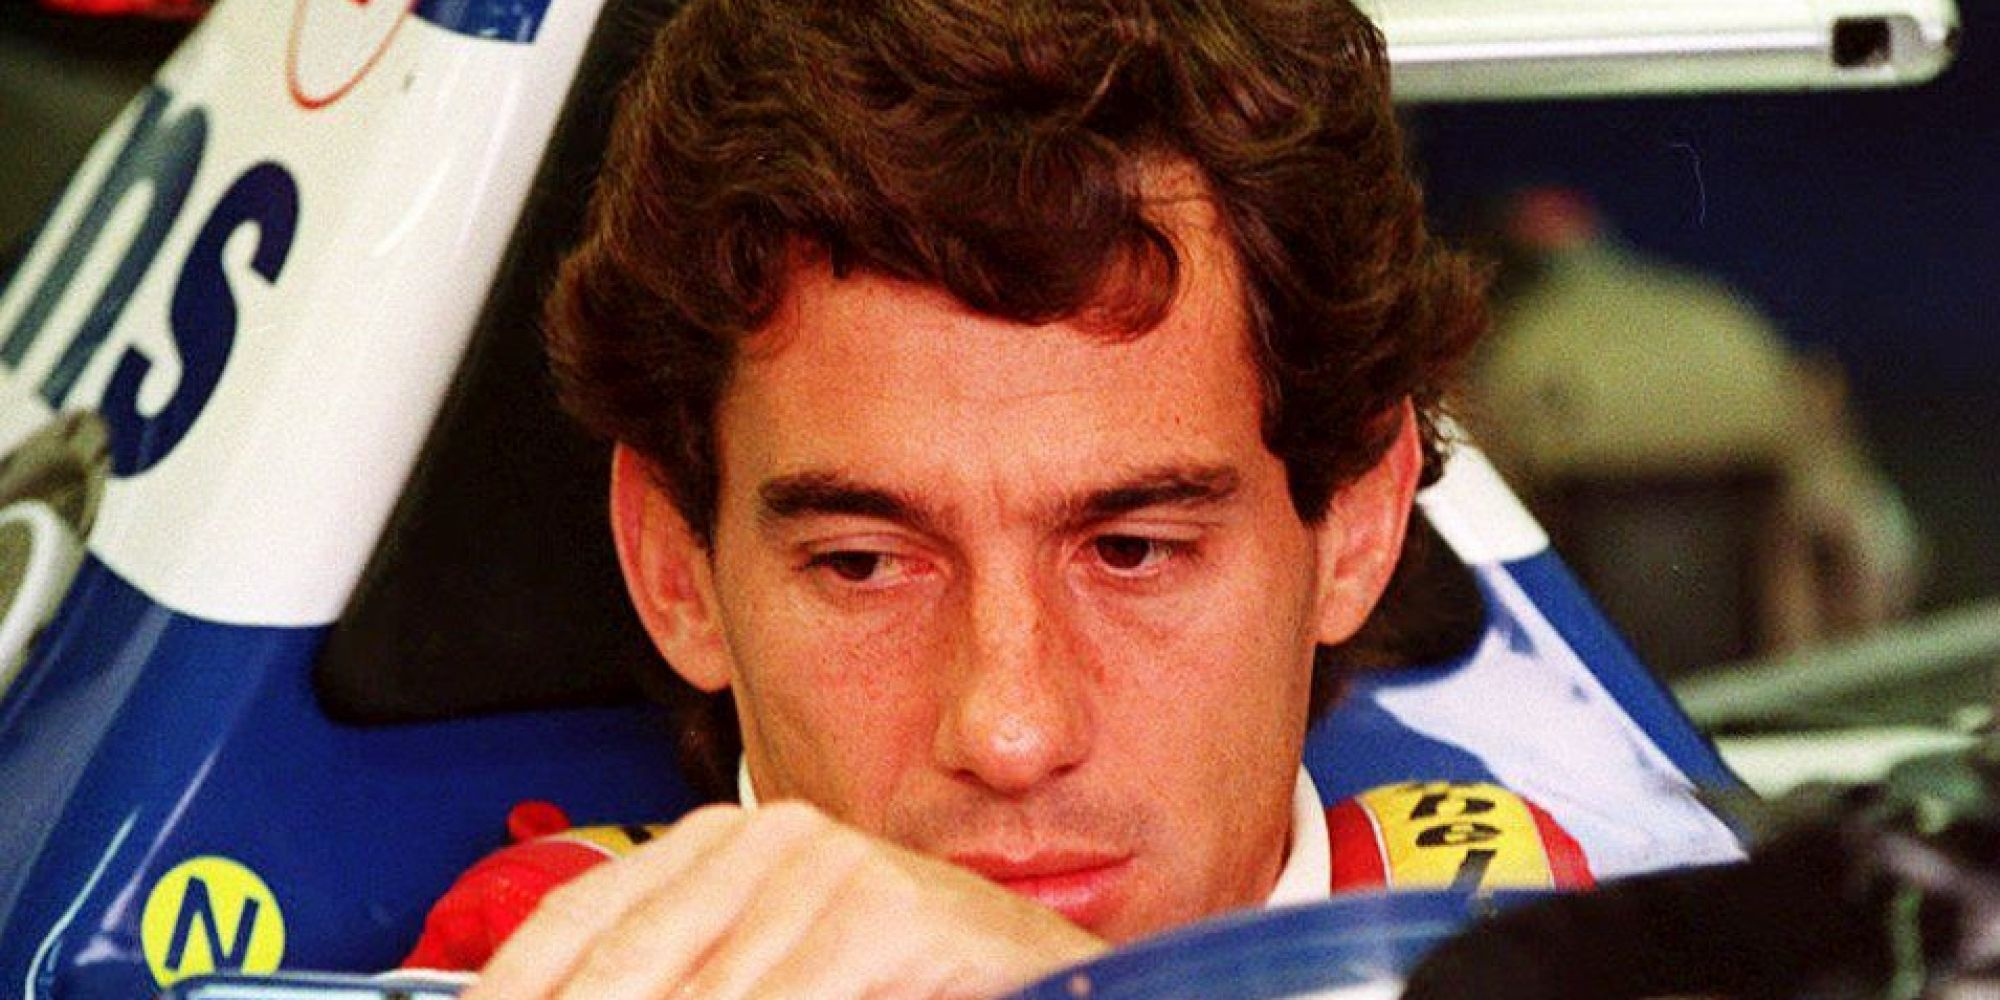 ayrton senna crash 20th anniversary of f1 champion 39 s death pictures huffpost uk. Black Bedroom Furniture Sets. Home Design Ideas